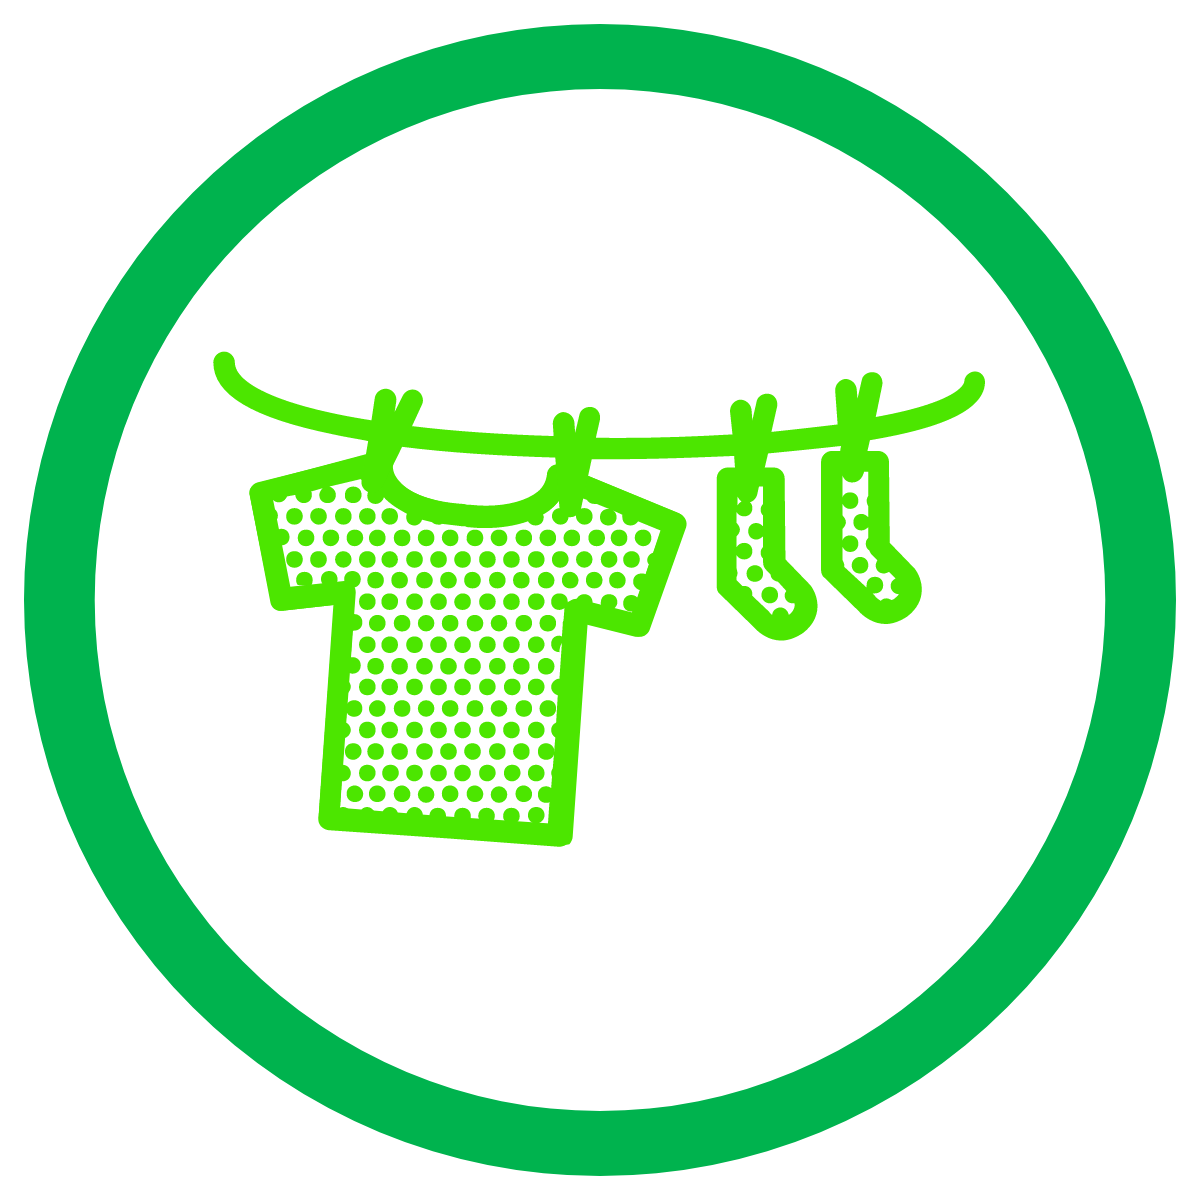 line drawing of green-coloured clothing on a clothesline